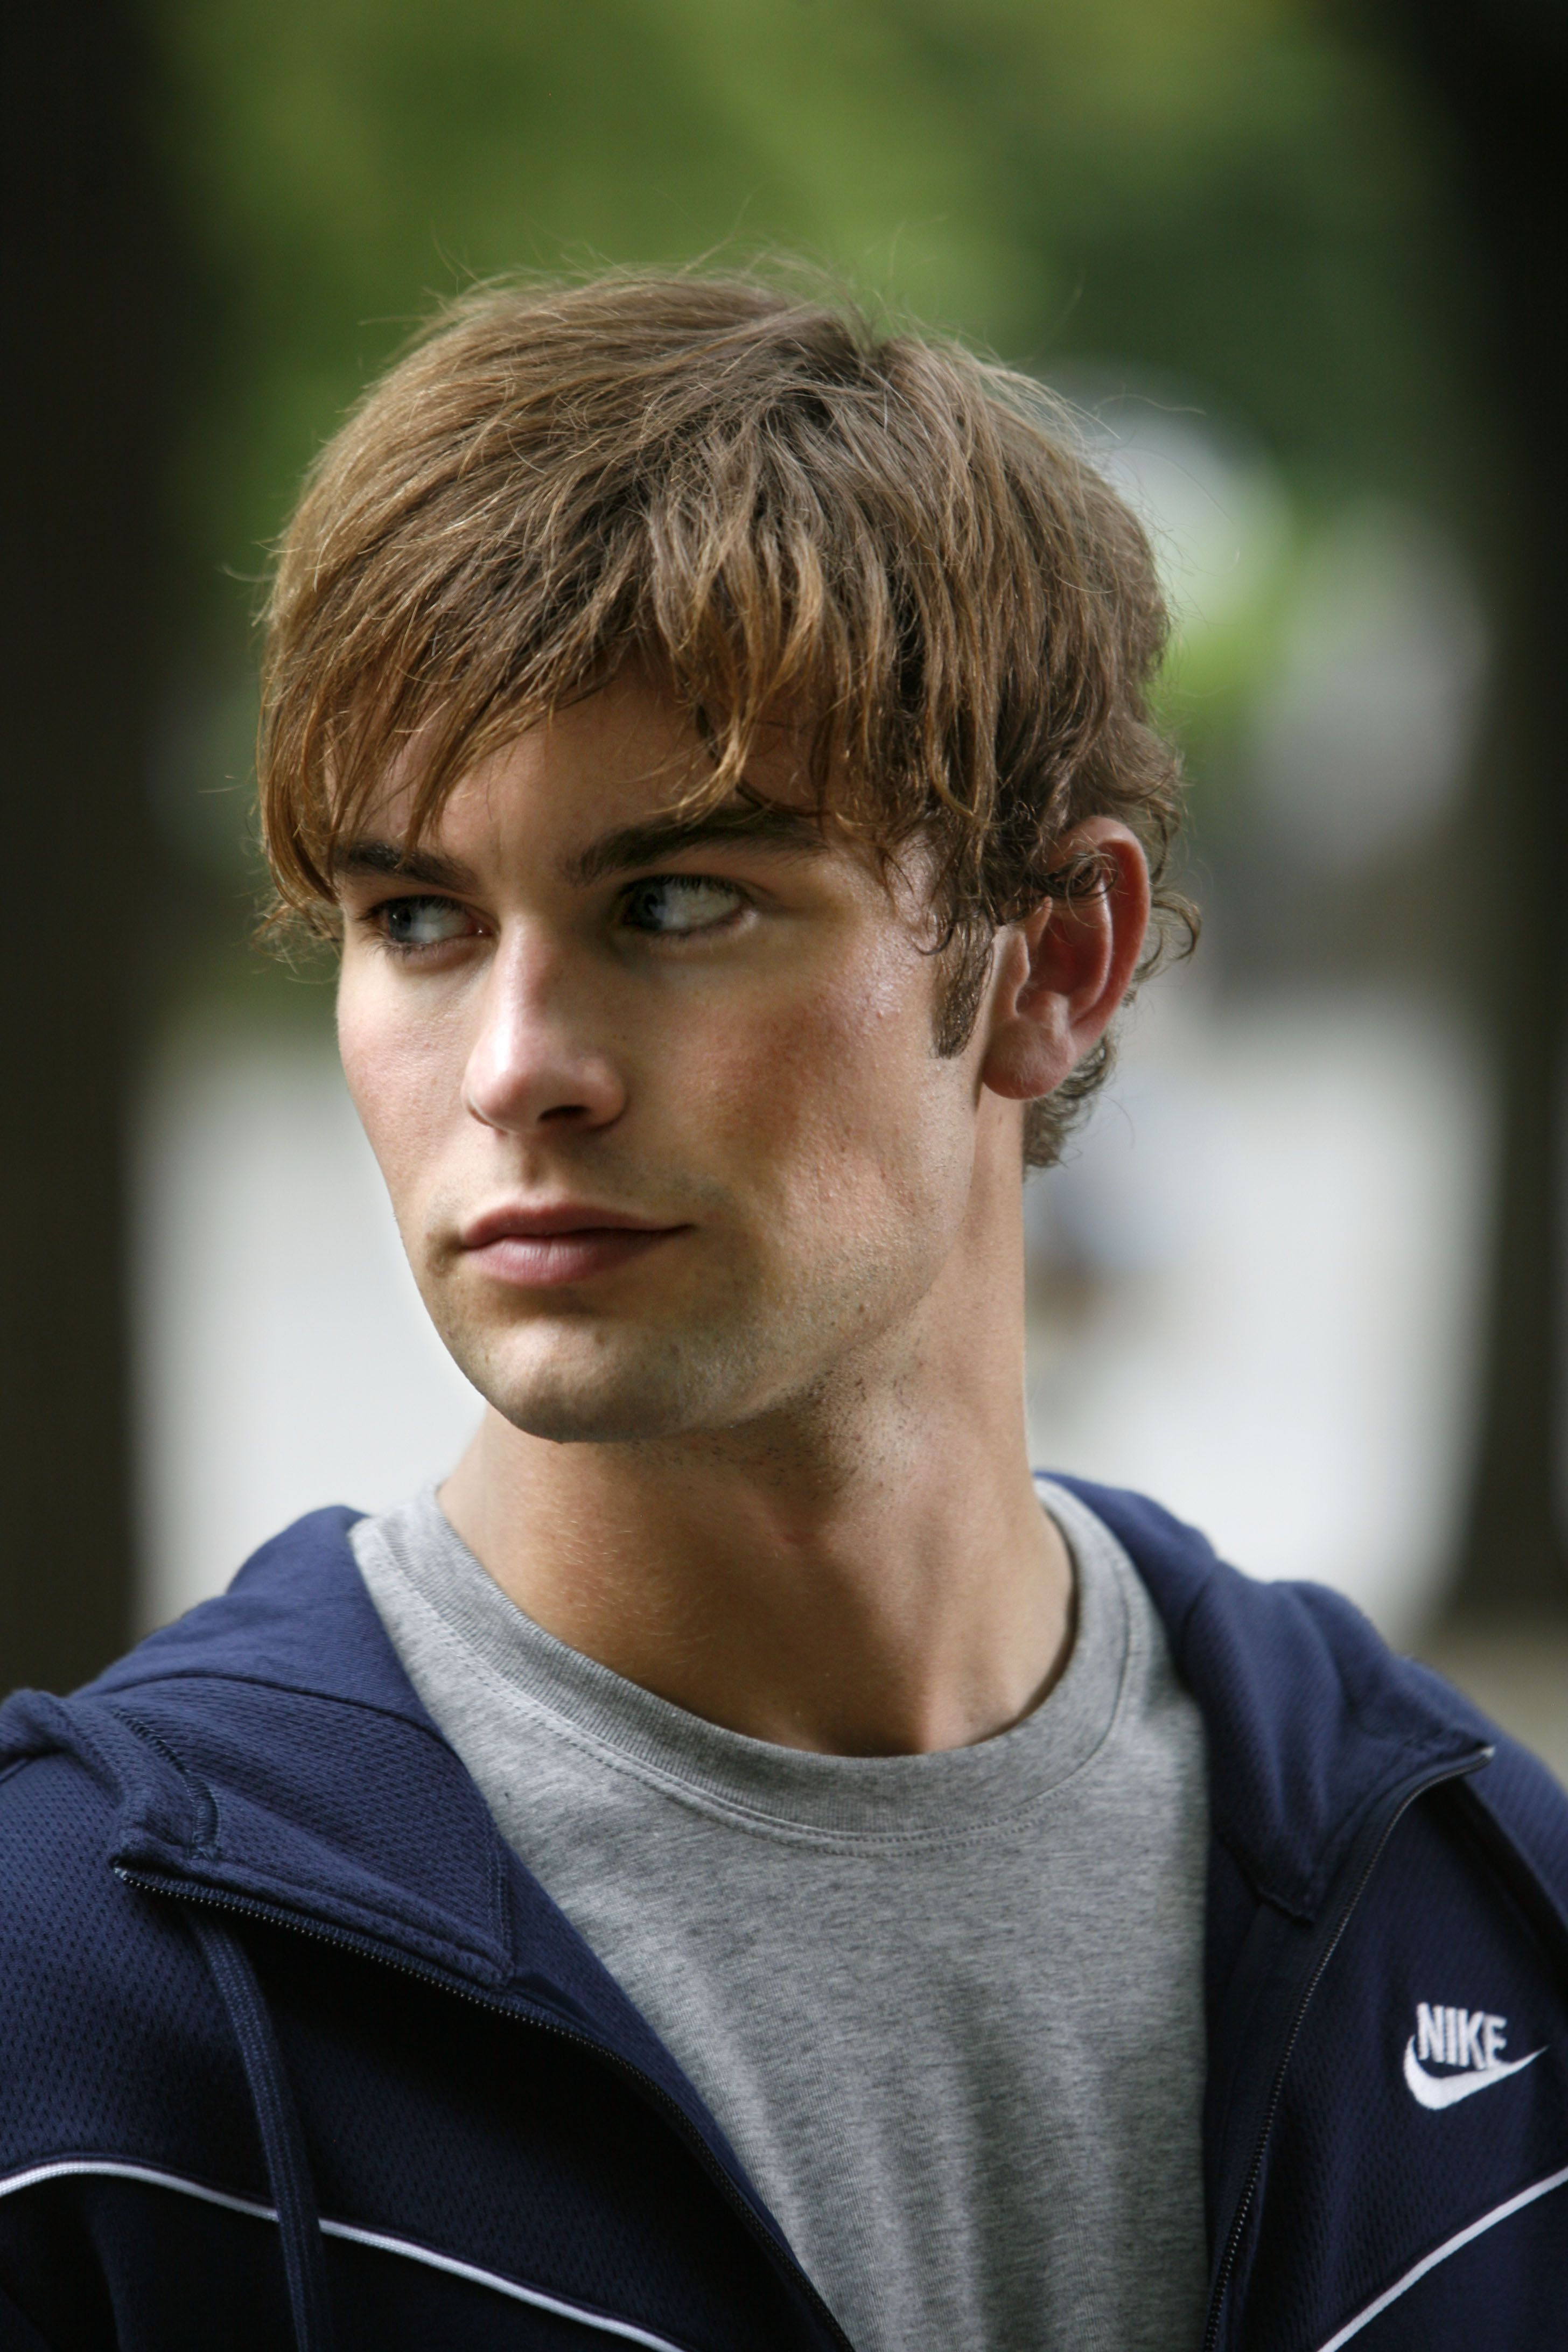 Boy hairstyle latest xg click image to close this window  gossip girl